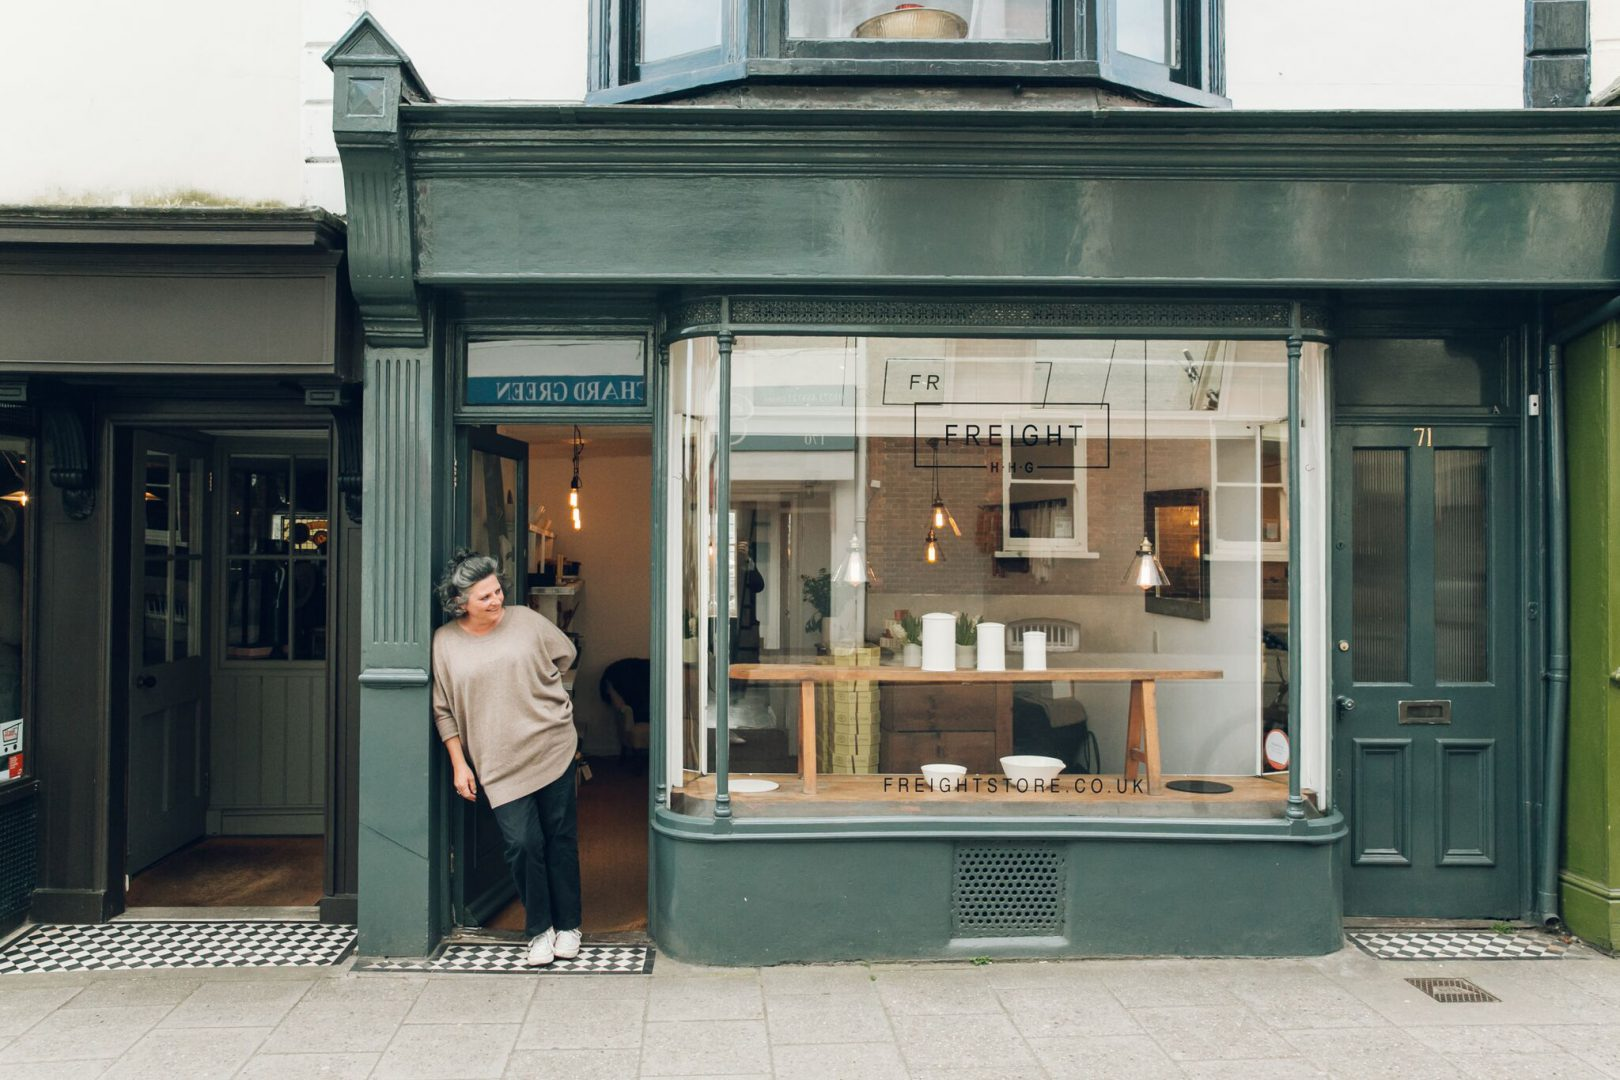 Freight's characterful green shopfront